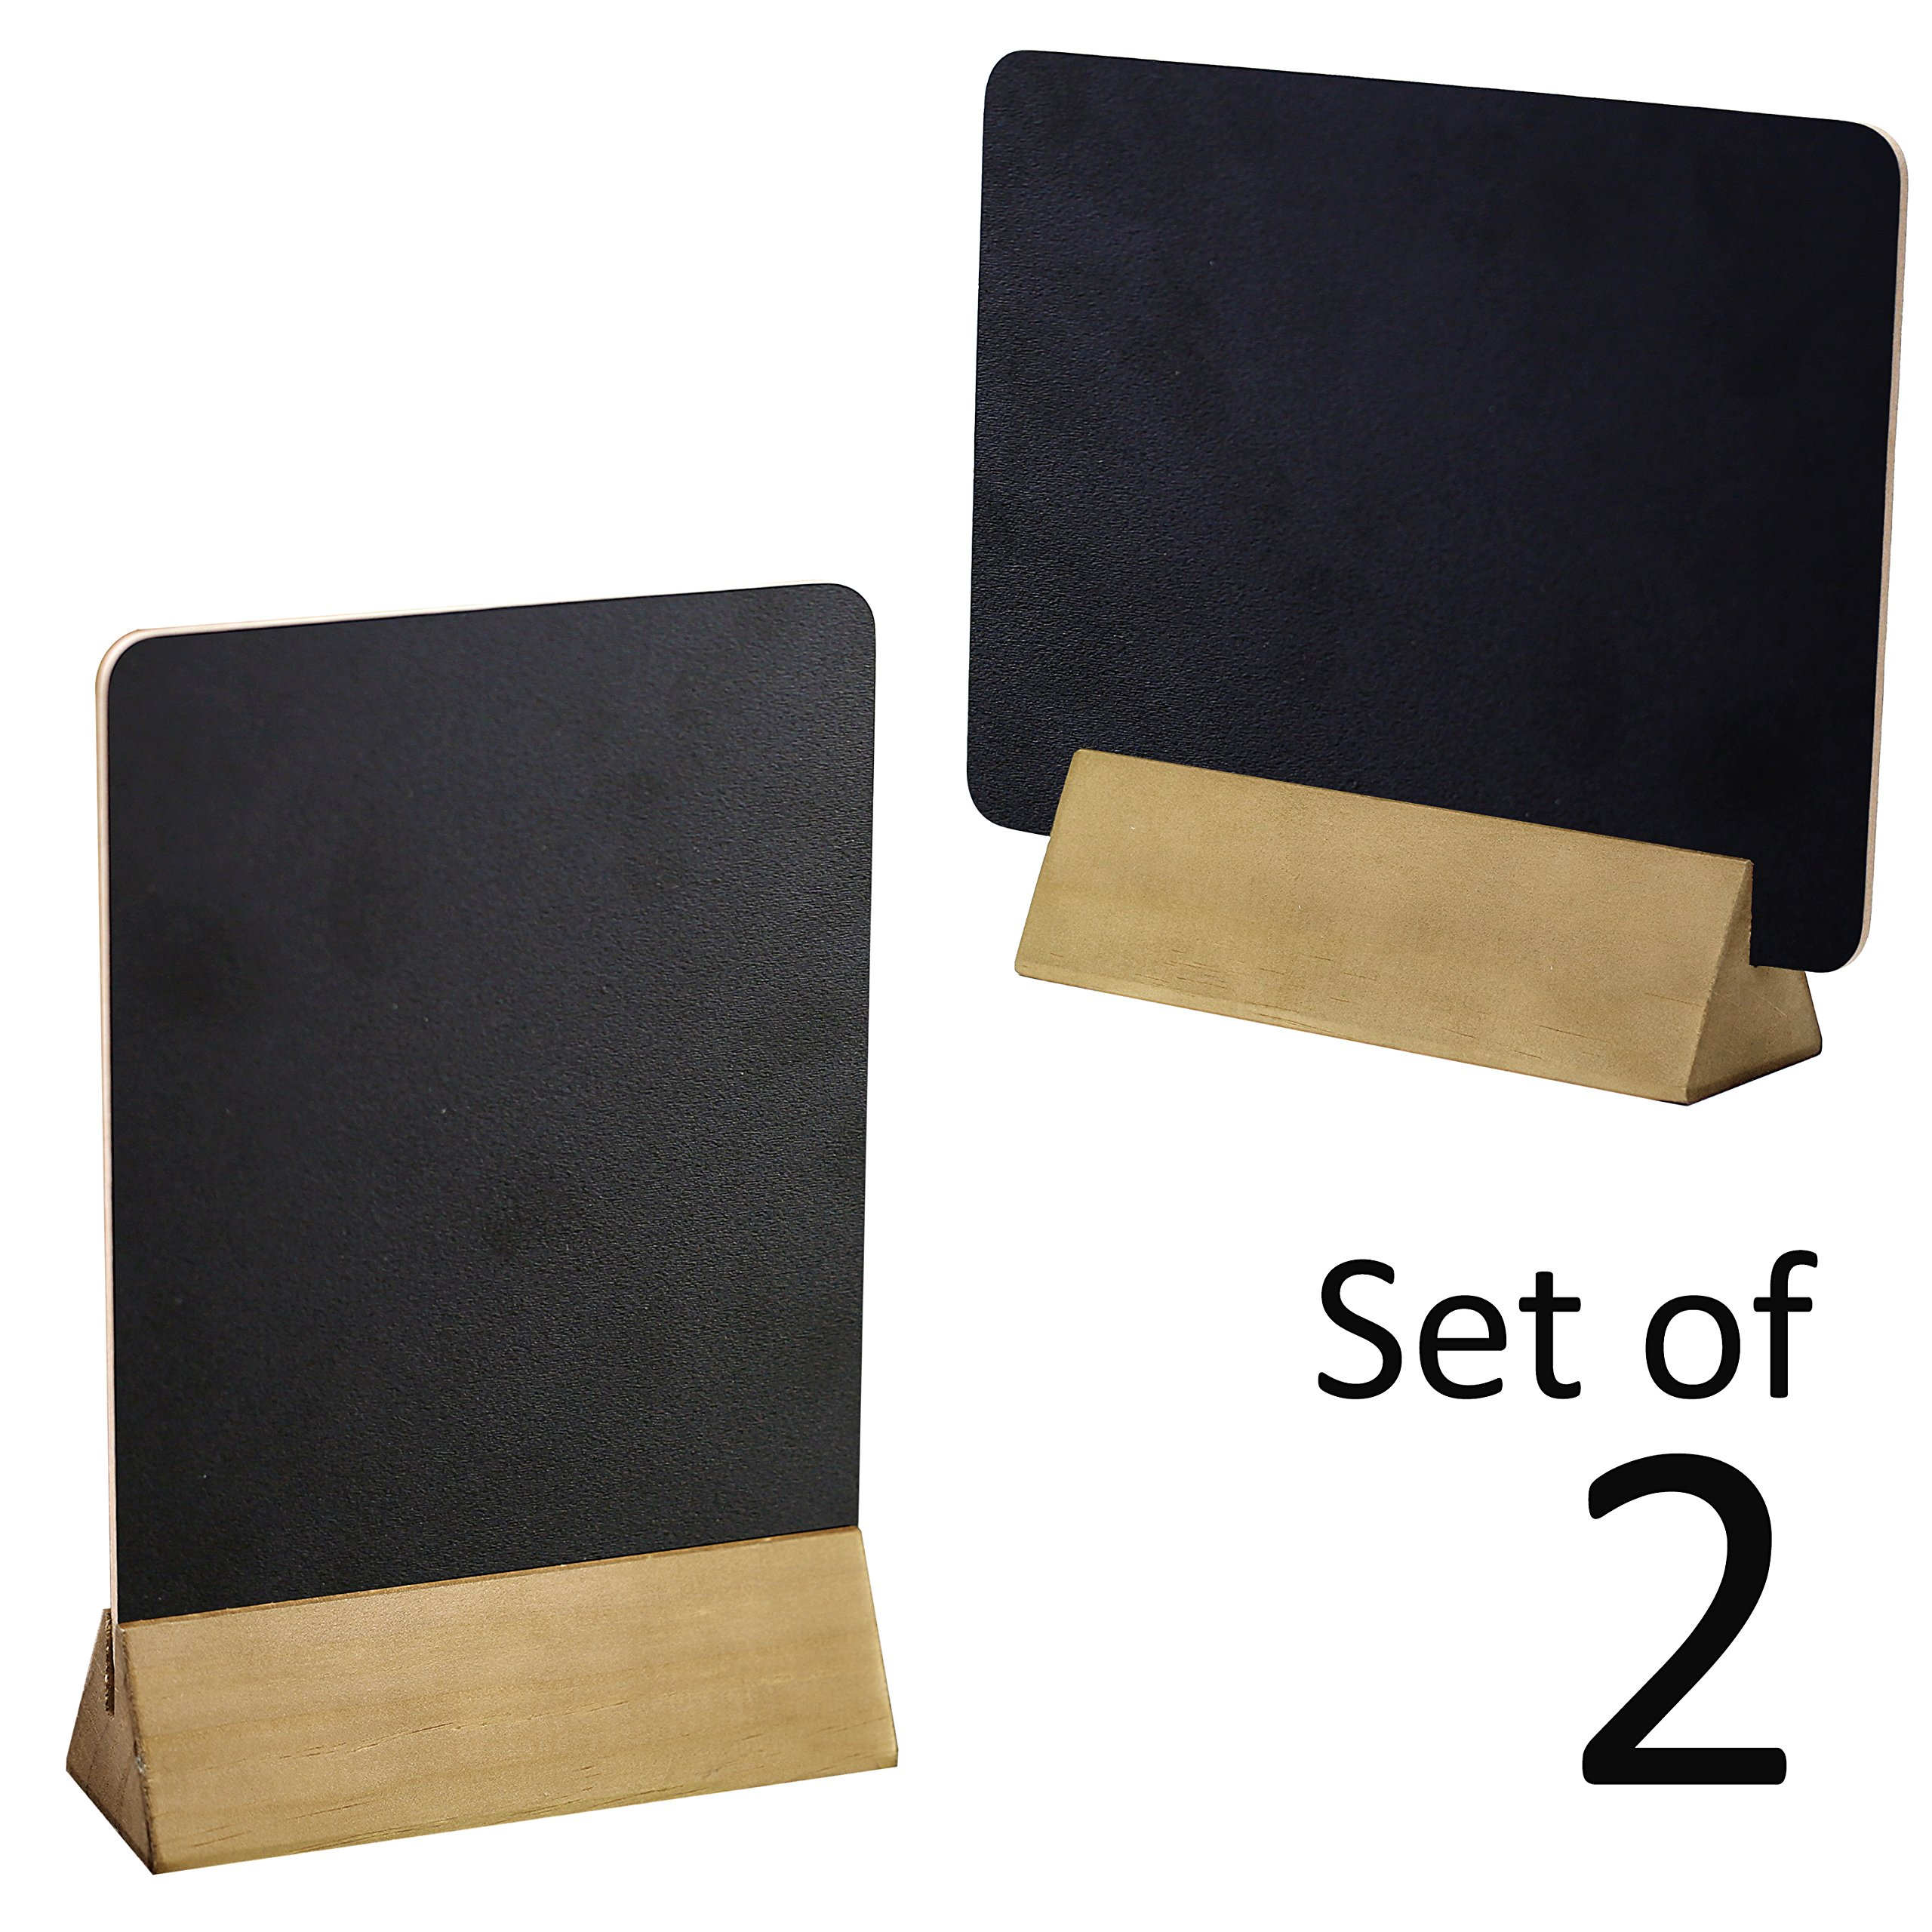 Set Of 2 Tabletop Double Sided Chalkboard Display Sign / Placeholder With  Wooden Base Stand,